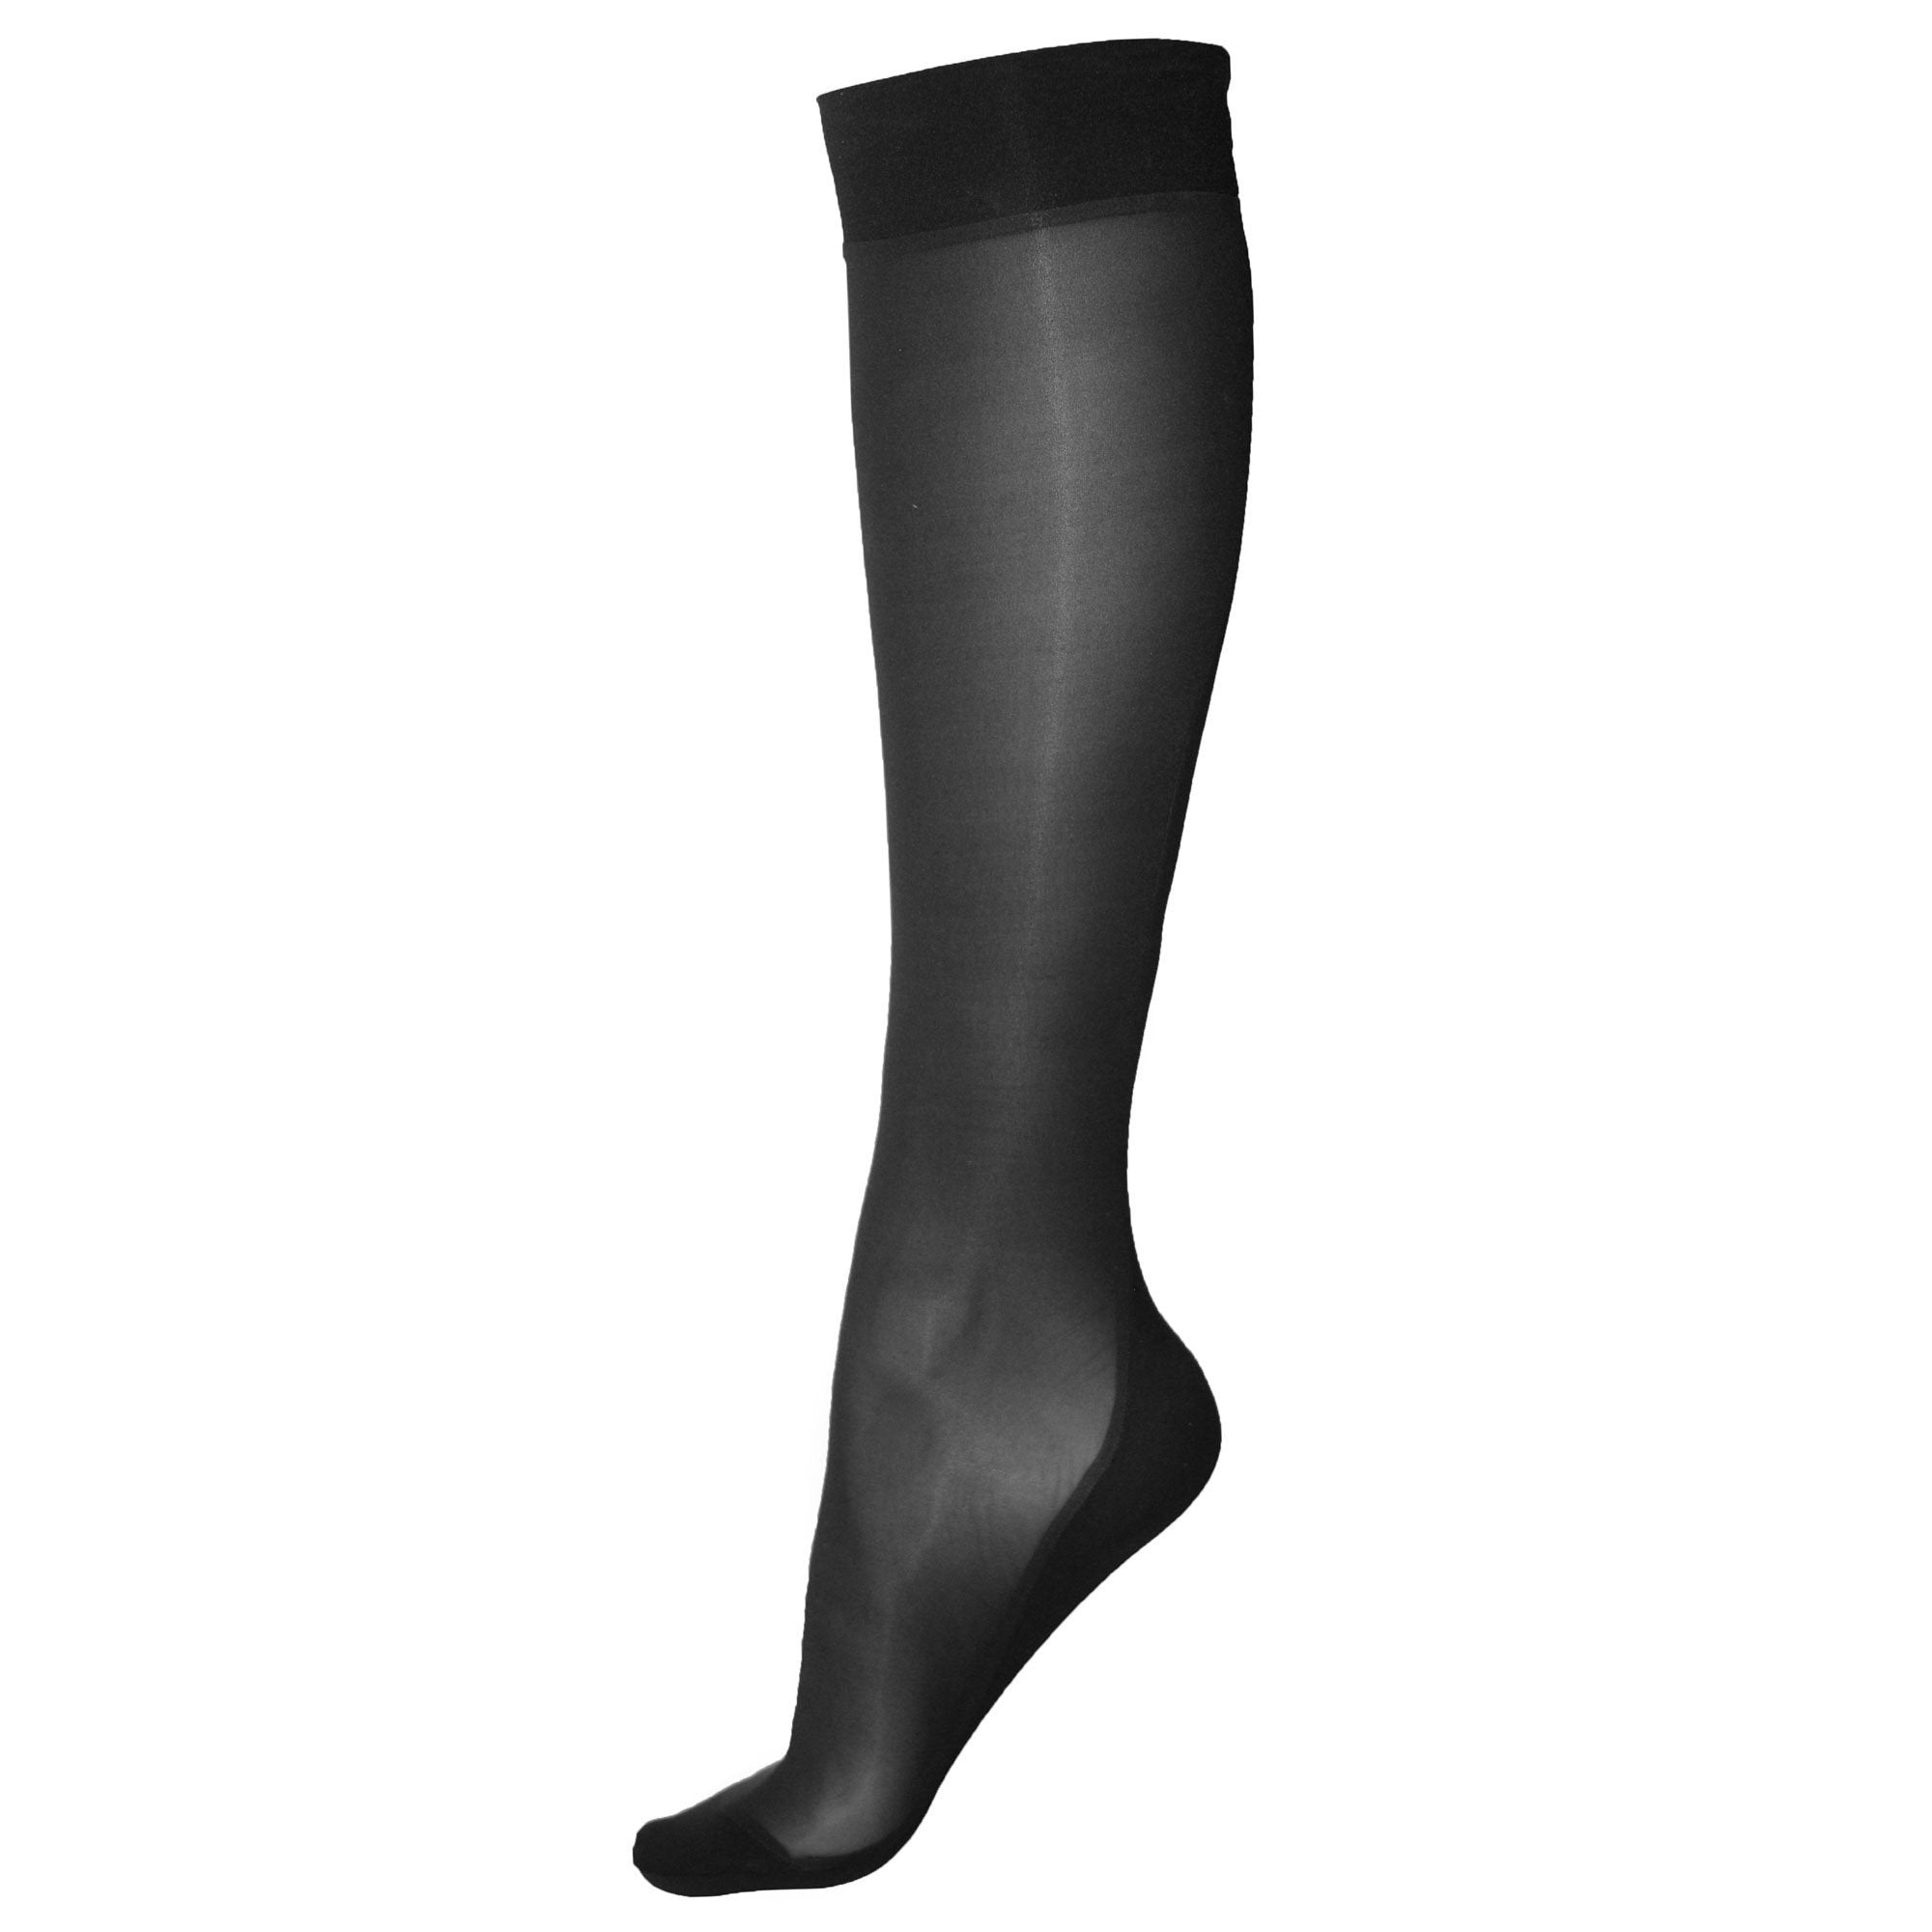 DSTM Shaped knee socks